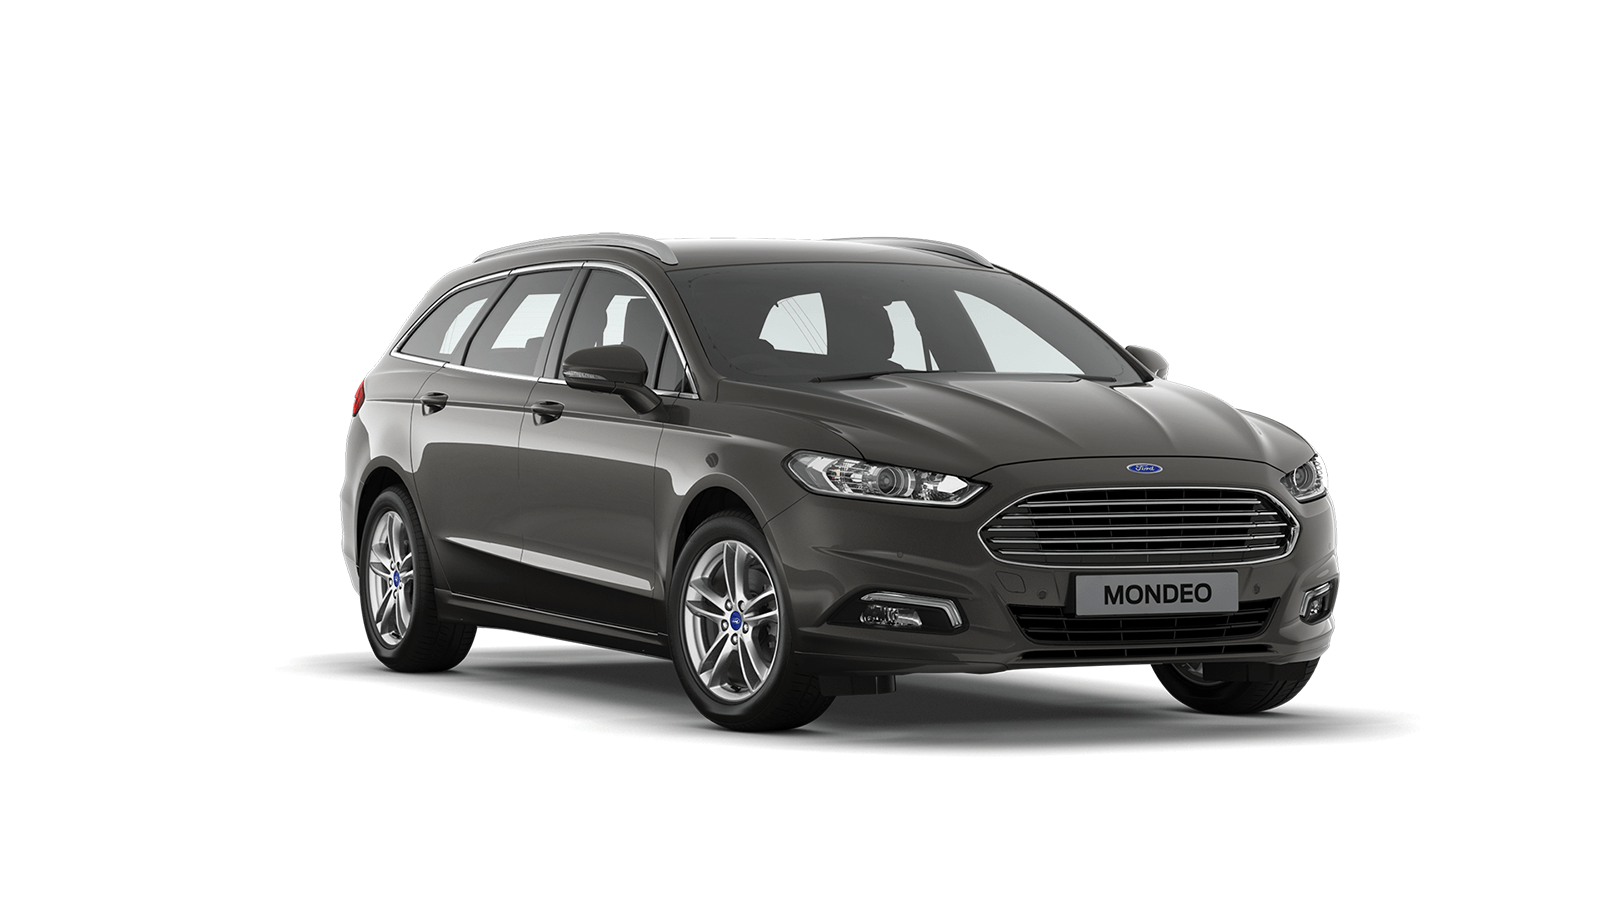 https://www.dealerinternet.co.uk/images/MONDEO%20(CD345)/2018.75/Estate/ZetecEdition/MAGNETIC.png